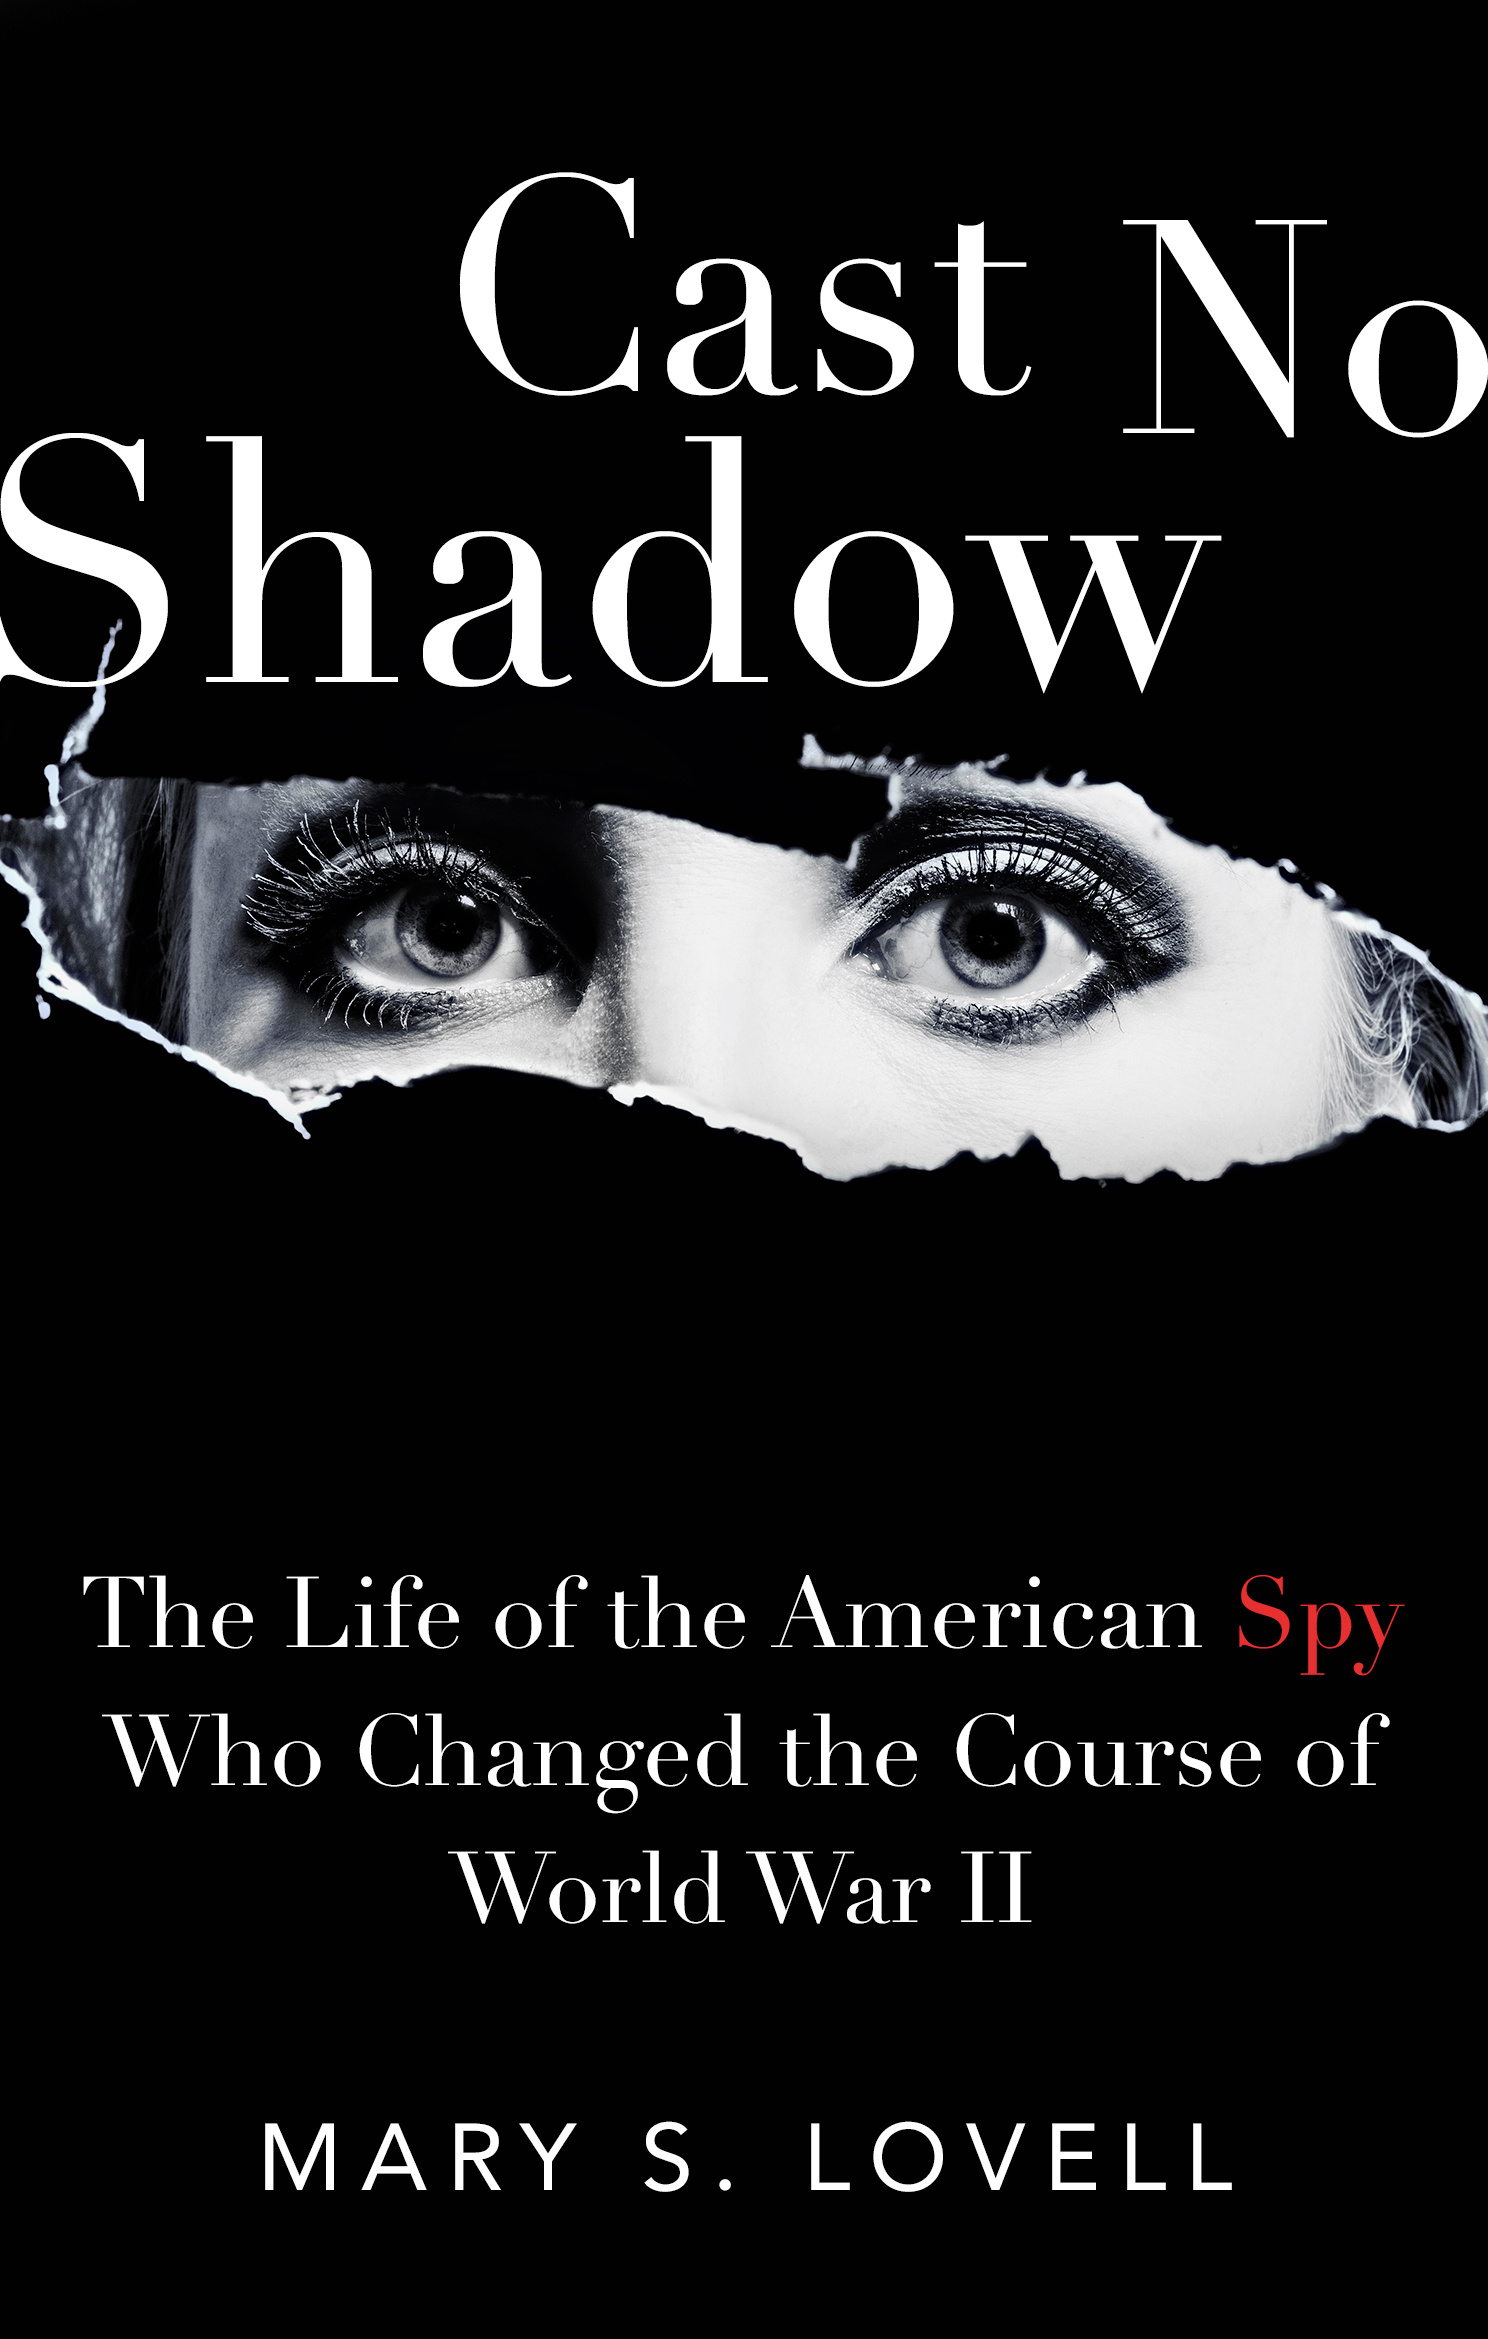 Cast No Shadow by Mary S. Lovell, ISBN: 9781408710579